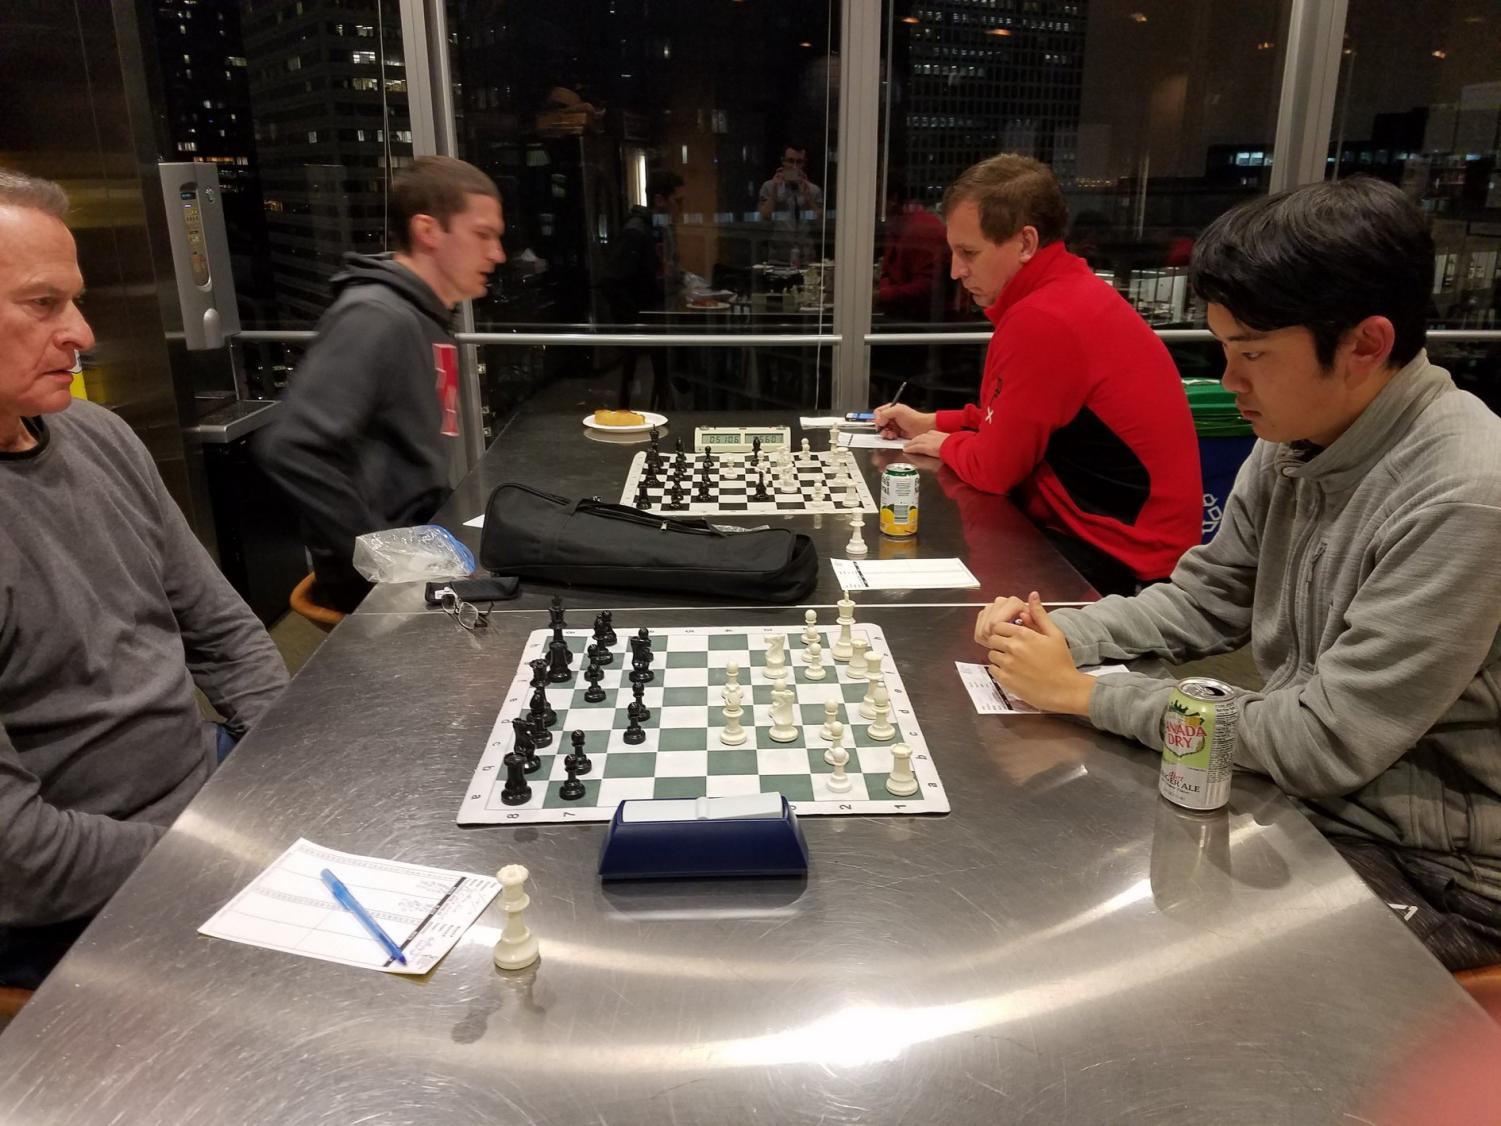 64 Squares, Northwestern's chess club, competes in the Chicago Industrial Chess League against other schools like the University of Chicago and companies like Citadel and Google.